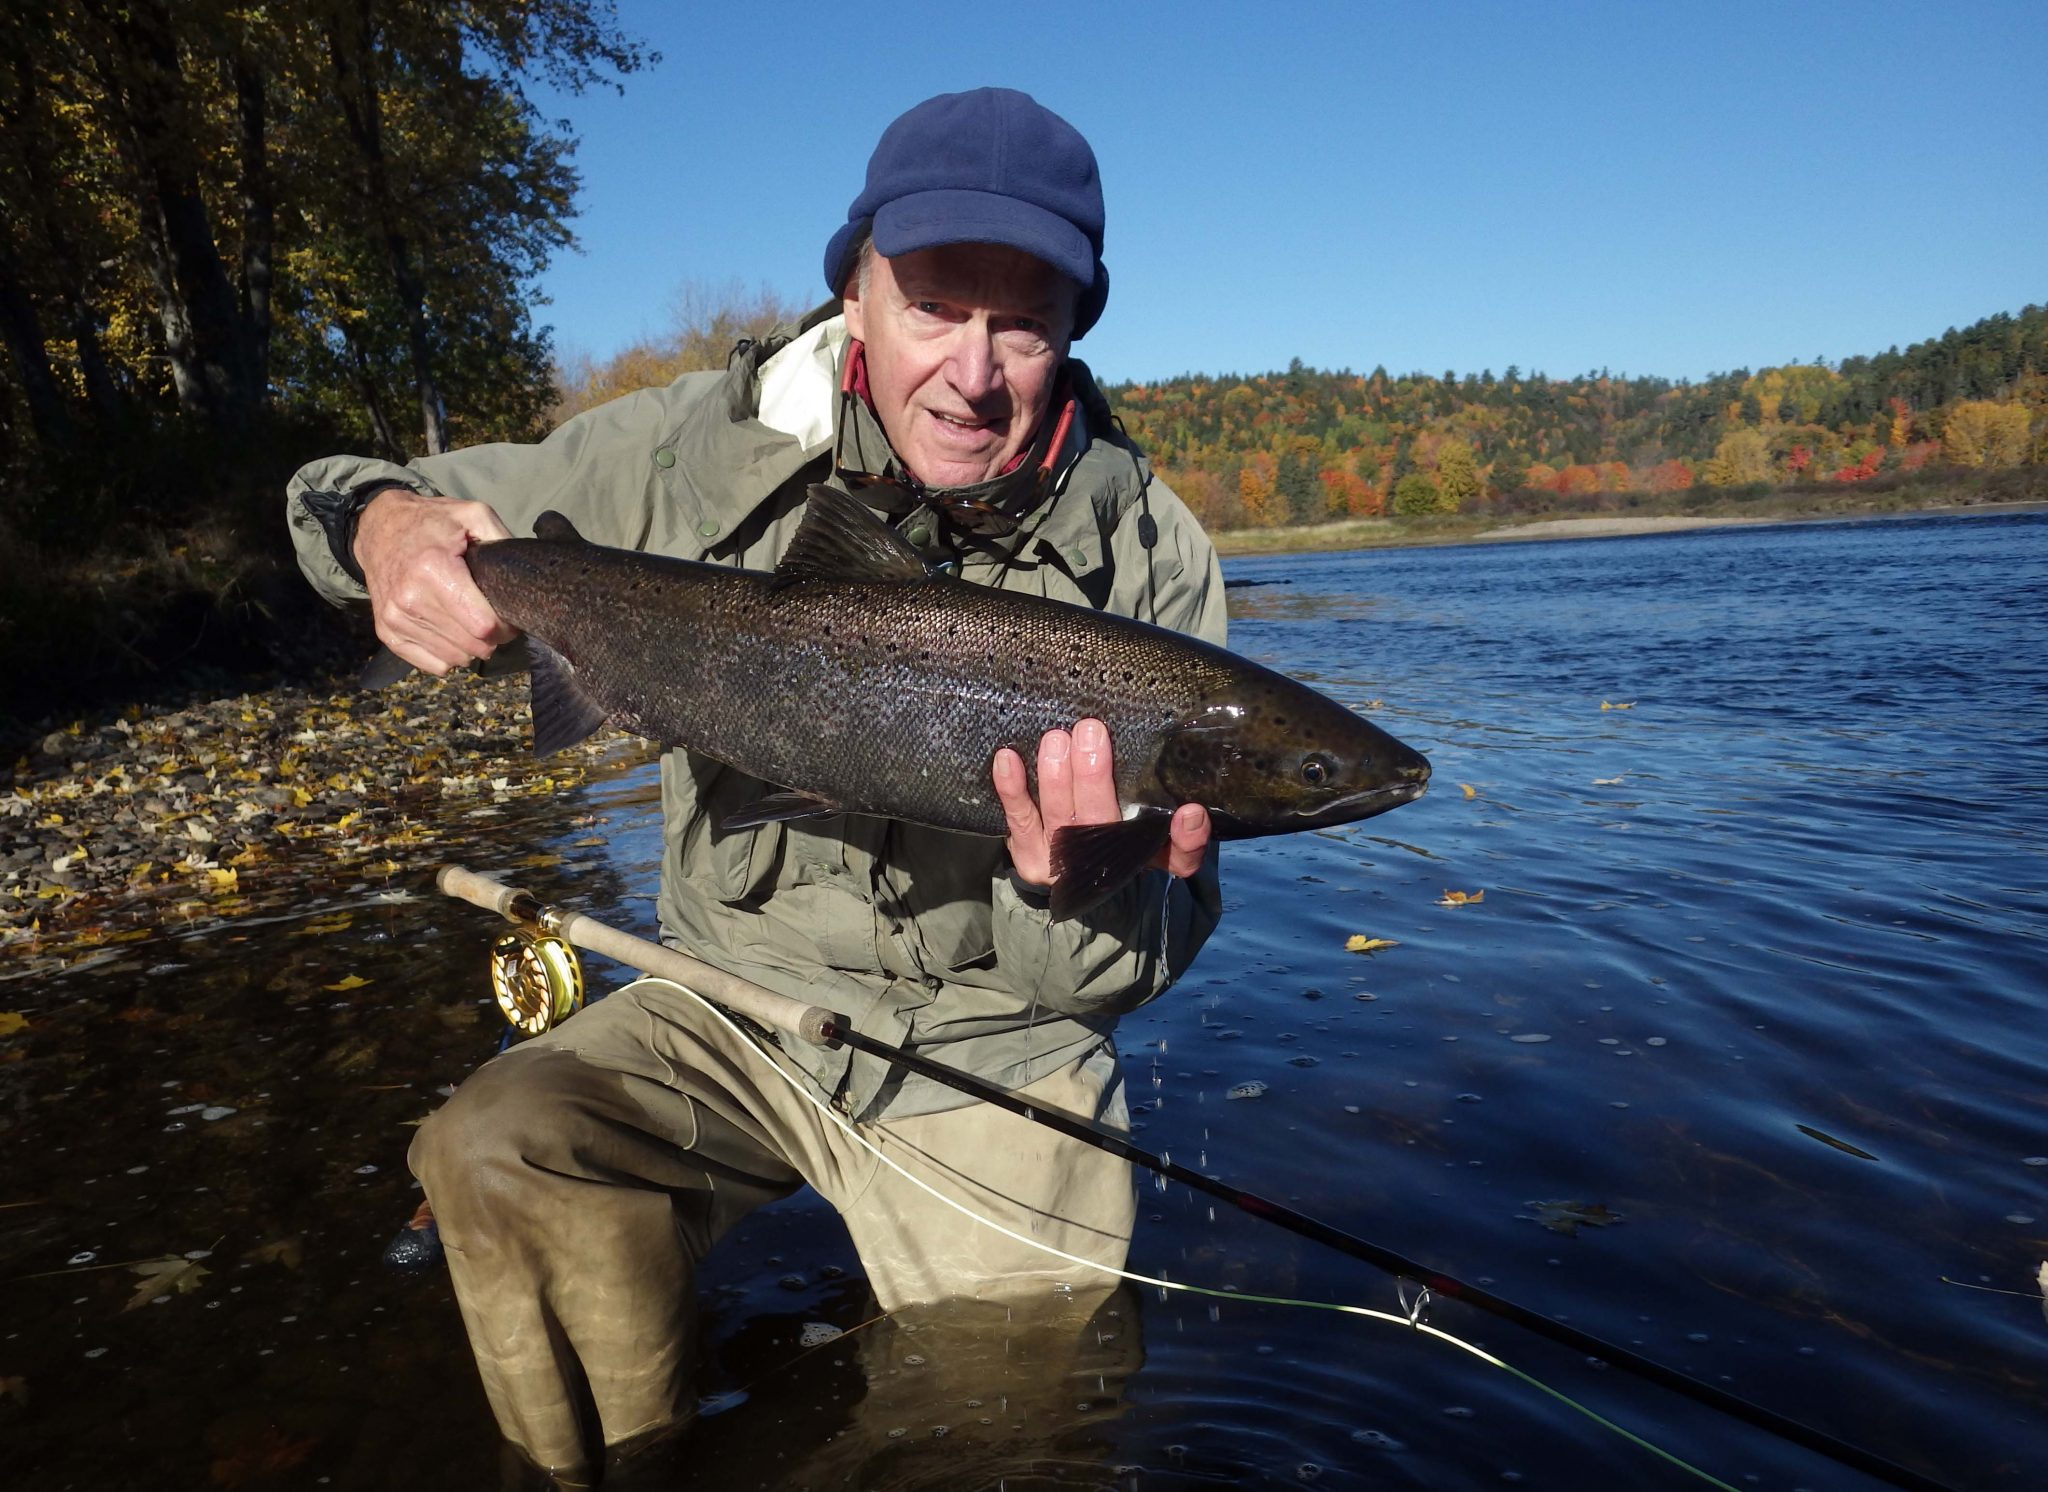 10.11.16. /></a> Wilson's Miramichi River Report for October 14th. We are wrapping up the 2016 season with perfect weather, low water and average fishing. J. Merritt is happy as he displays his beautiful fall salmon hked on his last day of fishing. I fished the Cains River on the 13th of October with good results as well, one 16 pound hook bill and a feisty 6 pound grilse. </p> <div class=